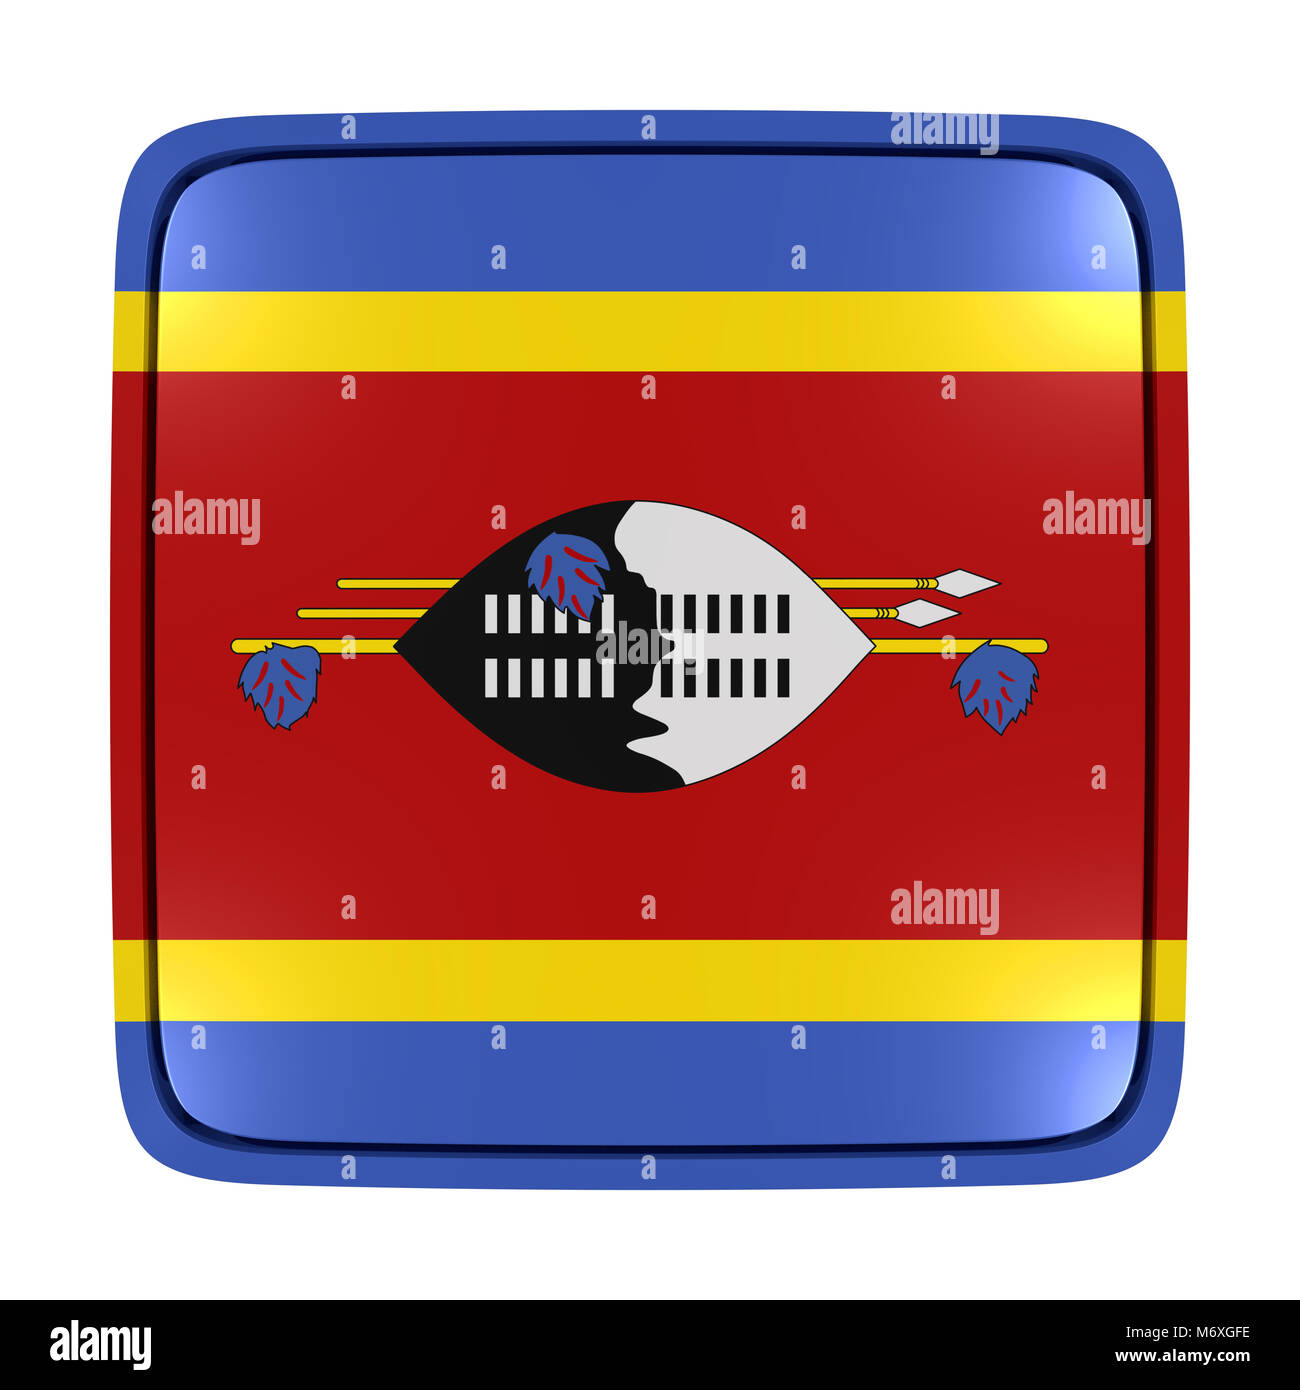 3d rendering of a Kingdom of Swaziland flag icon. Isolated on white background. Stock Photo